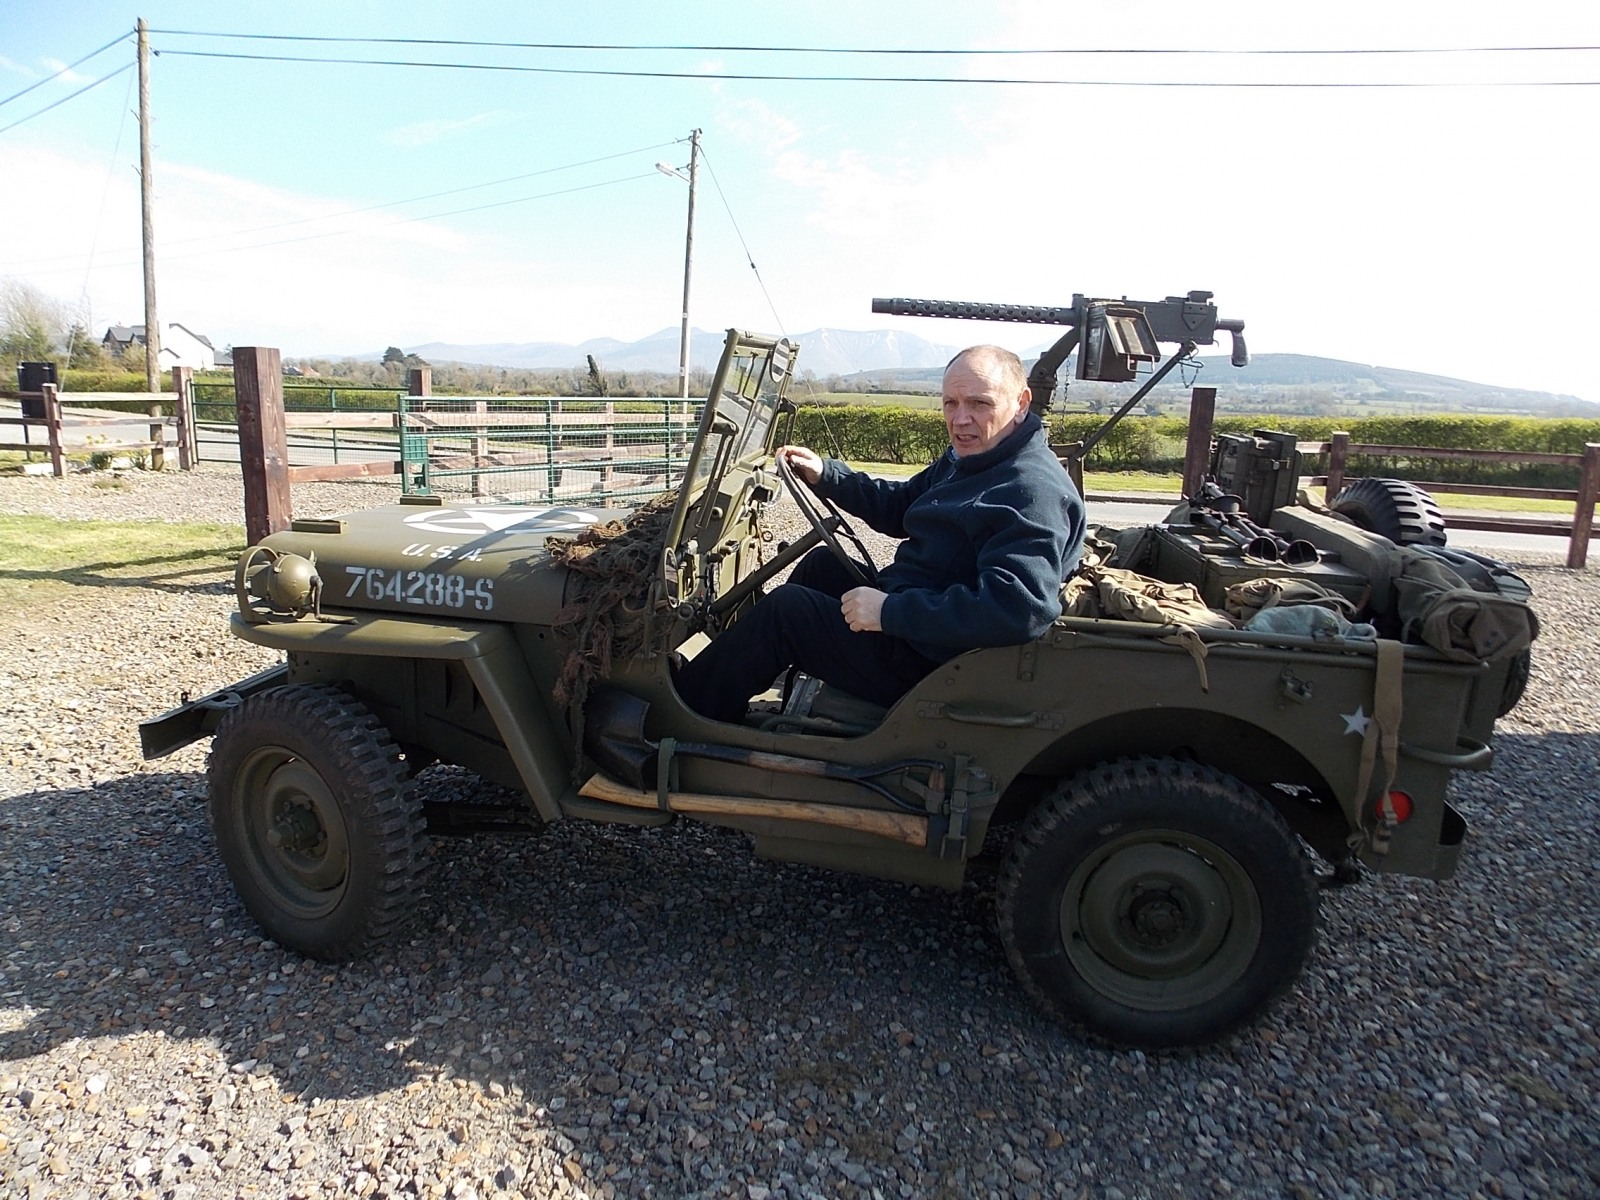 1945-Ford-GPW-Jeep-with-machine-gun-The-Abingdon-Collection-2017